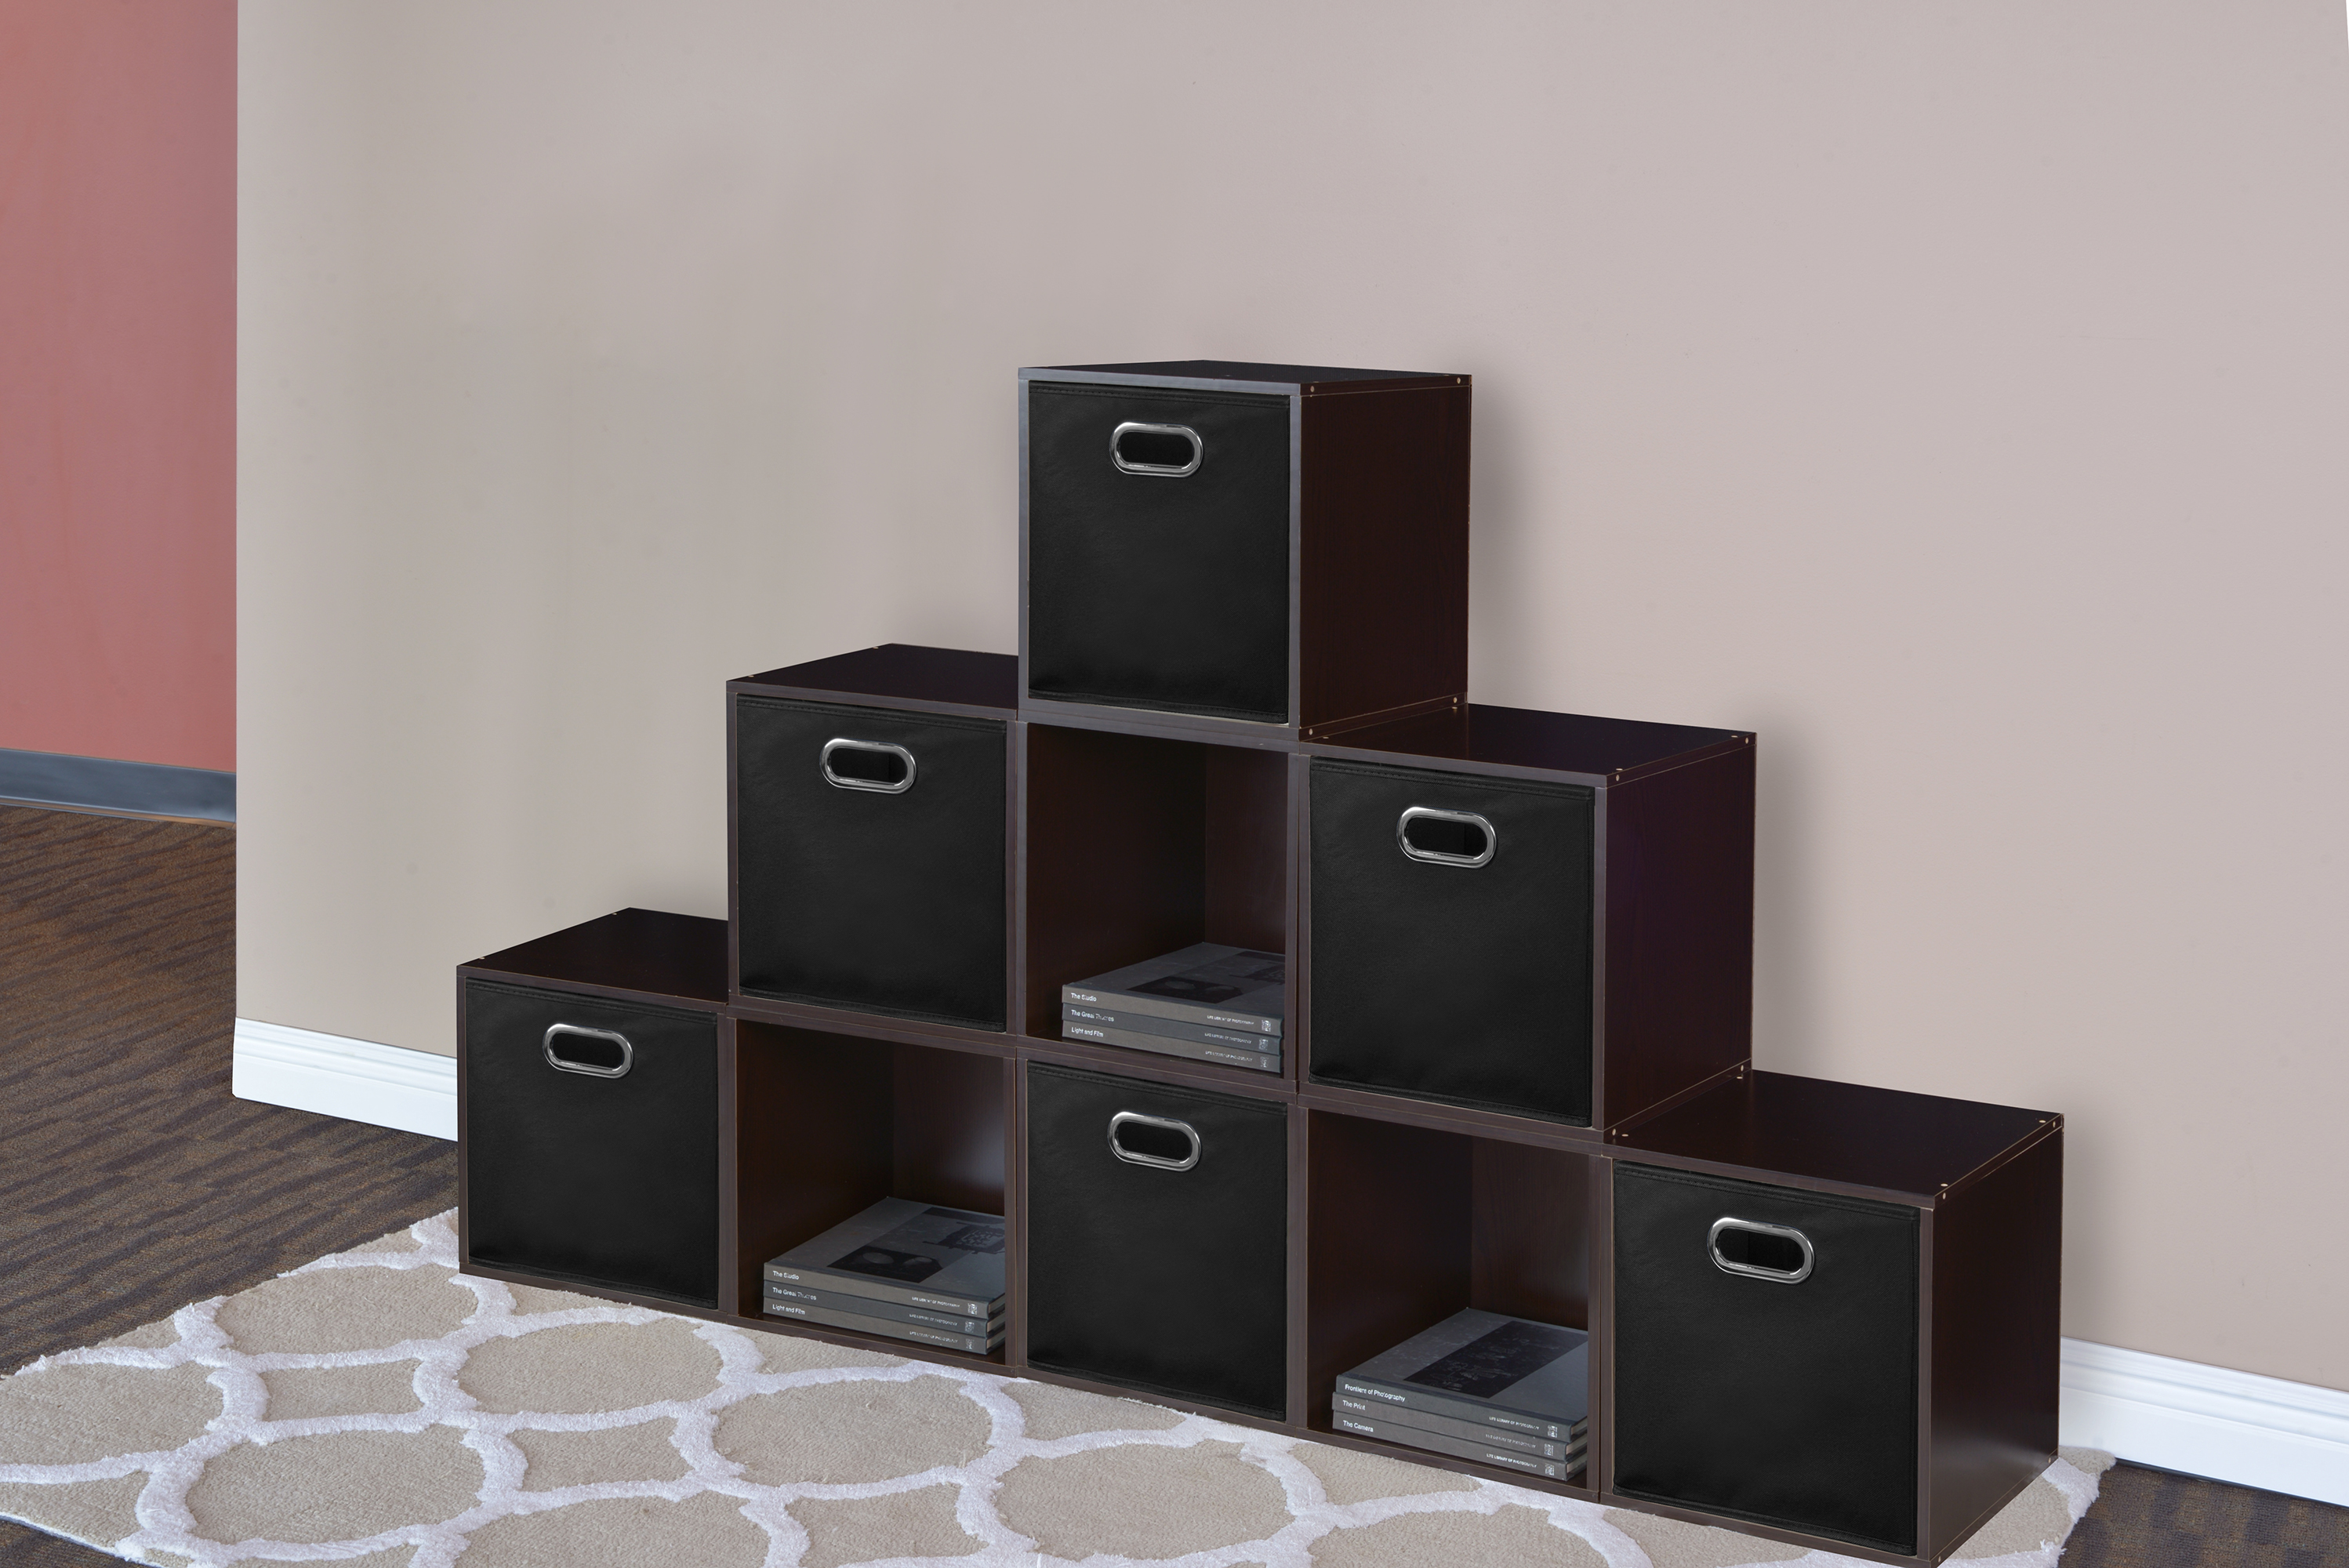 Click here to buy Niche Cubo Foldable Fabric Storage Bin, Set of 6- Natural by Regency.